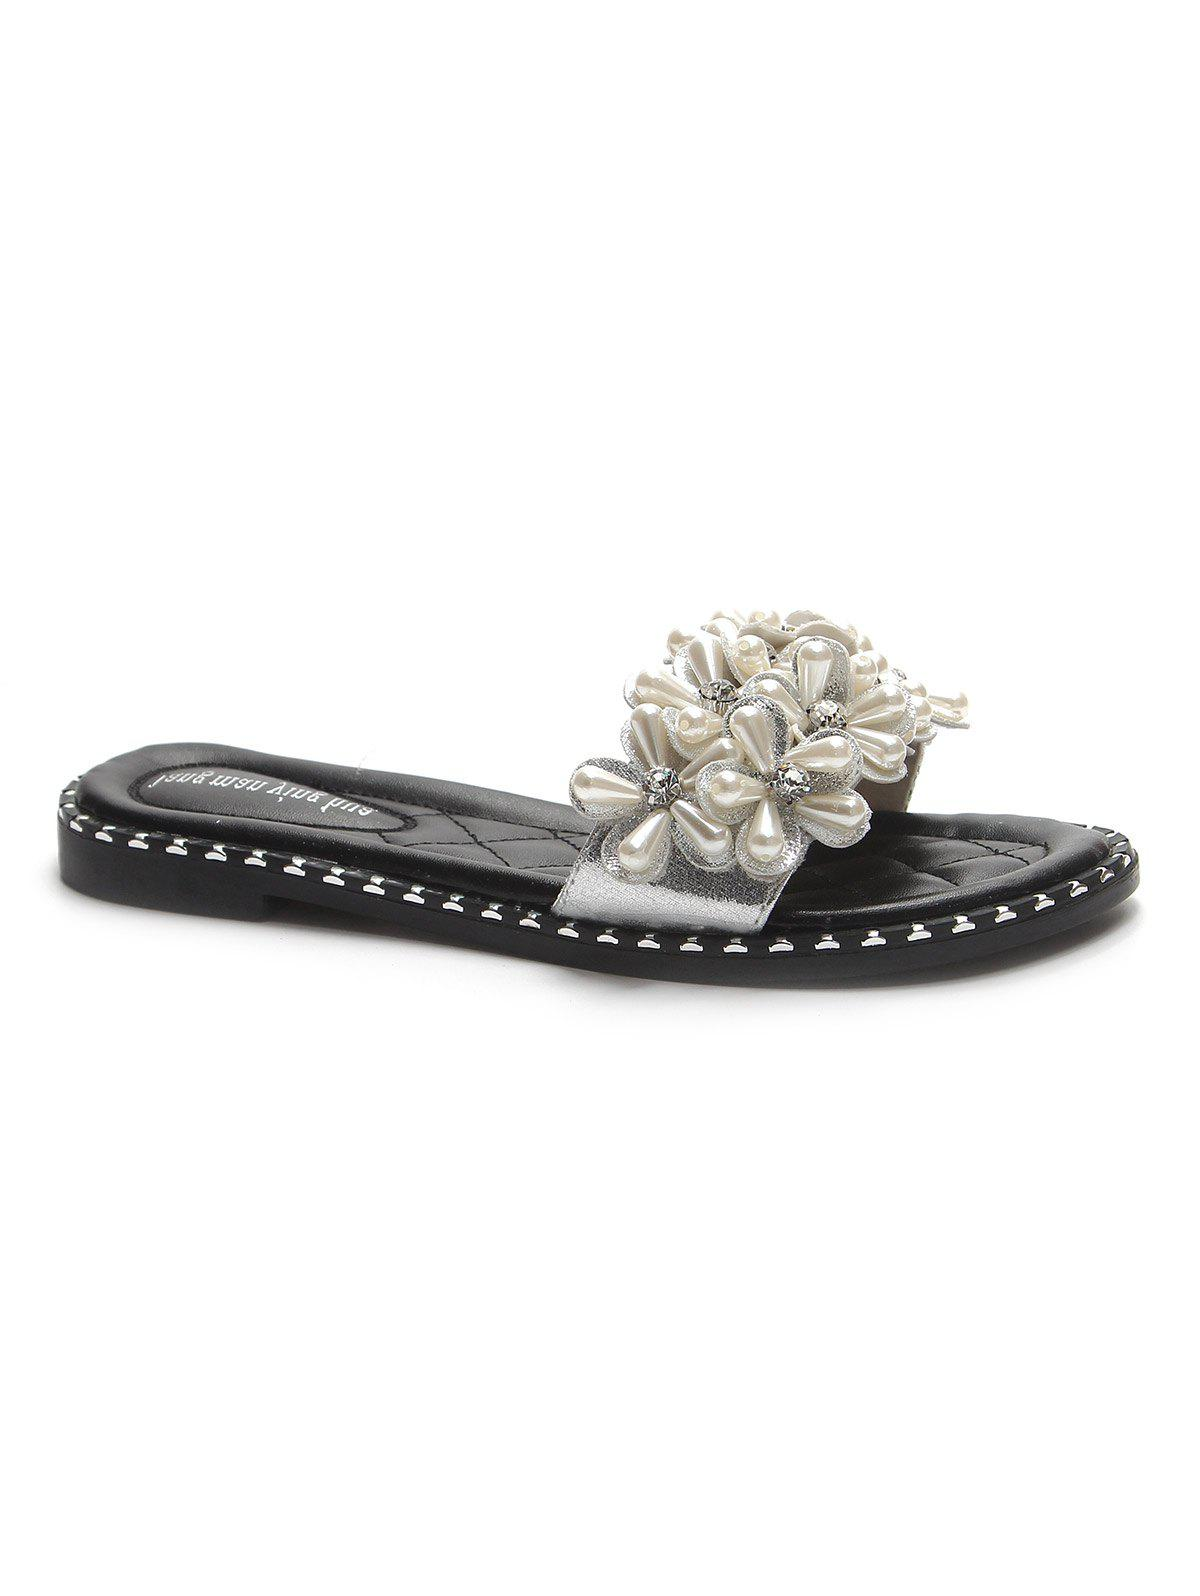 Casual Rhinestone Embellished Slides for Holiday - WHITE 40